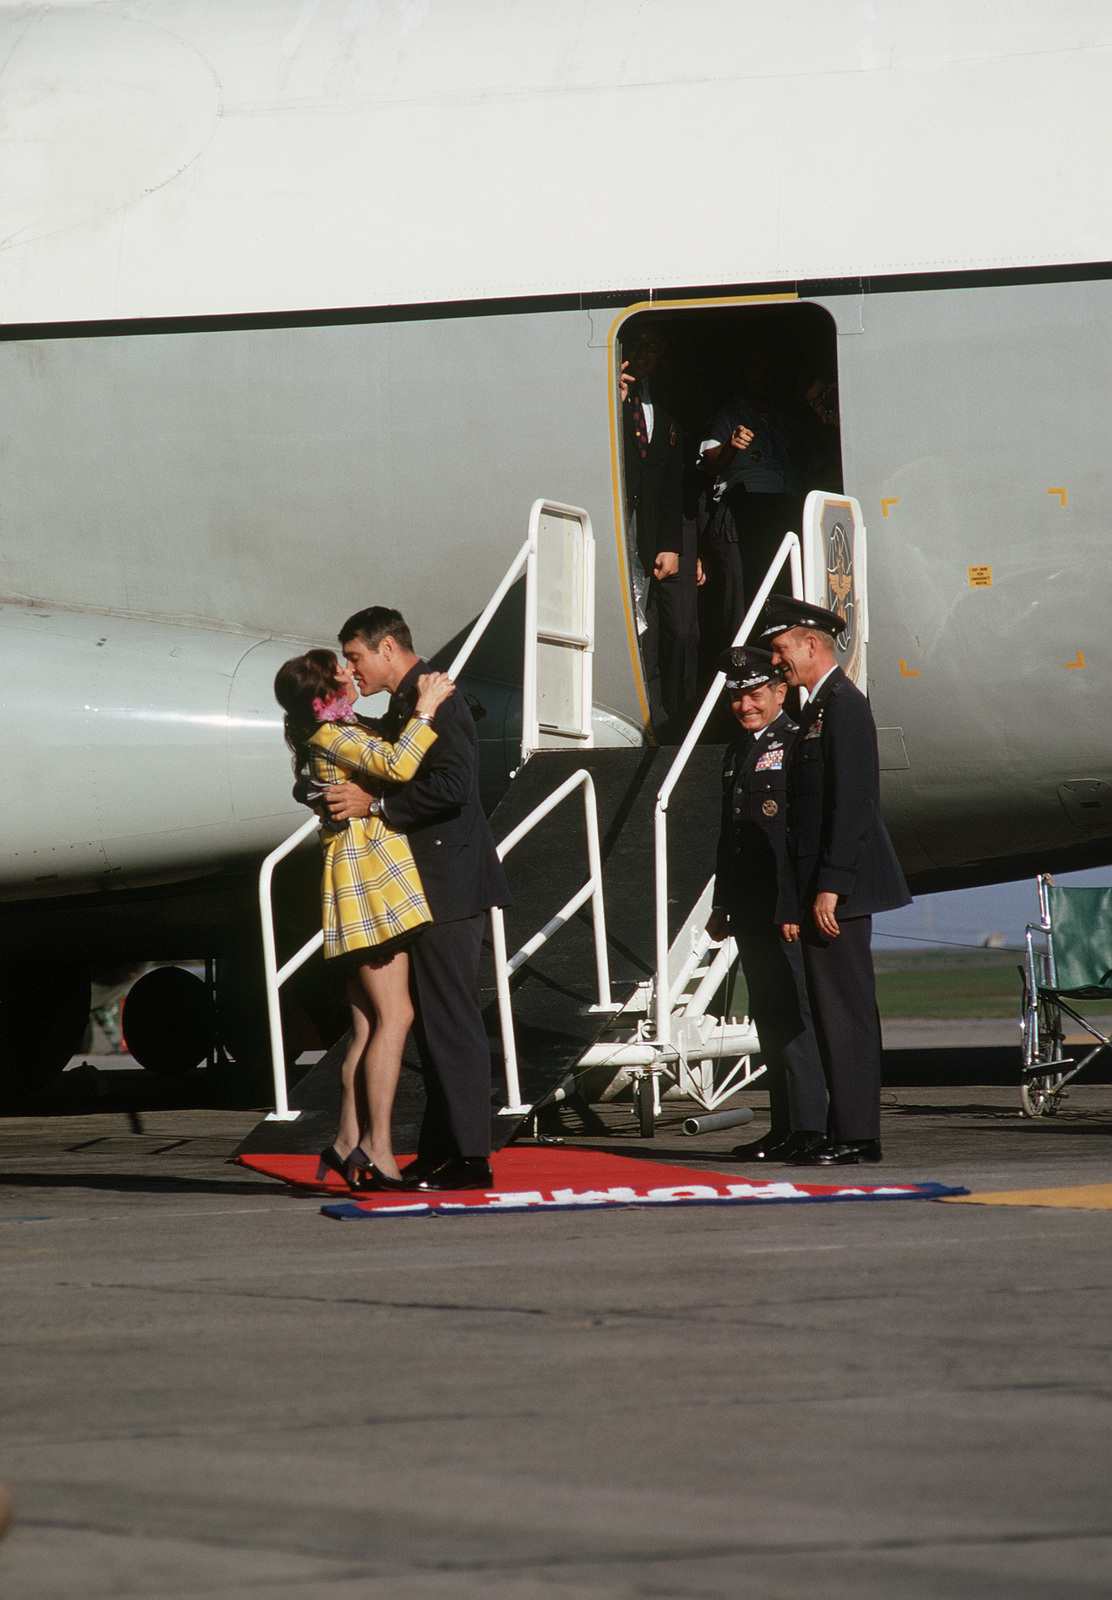 Former POW and U.S. Air Force MAJ Hubert Kelly Flesher kisses his wife at the ramp of the C-141 Starlifter, that transported him and fellow POWs from Clark AB, Philippines. MGEN John Gonge, 22nd Air Force Commander, 22nd AF looks on. MAJ Flesher was captured on 2 Dec 66 and released by the North Vietnamese in Hanoi on 18 Feb 73